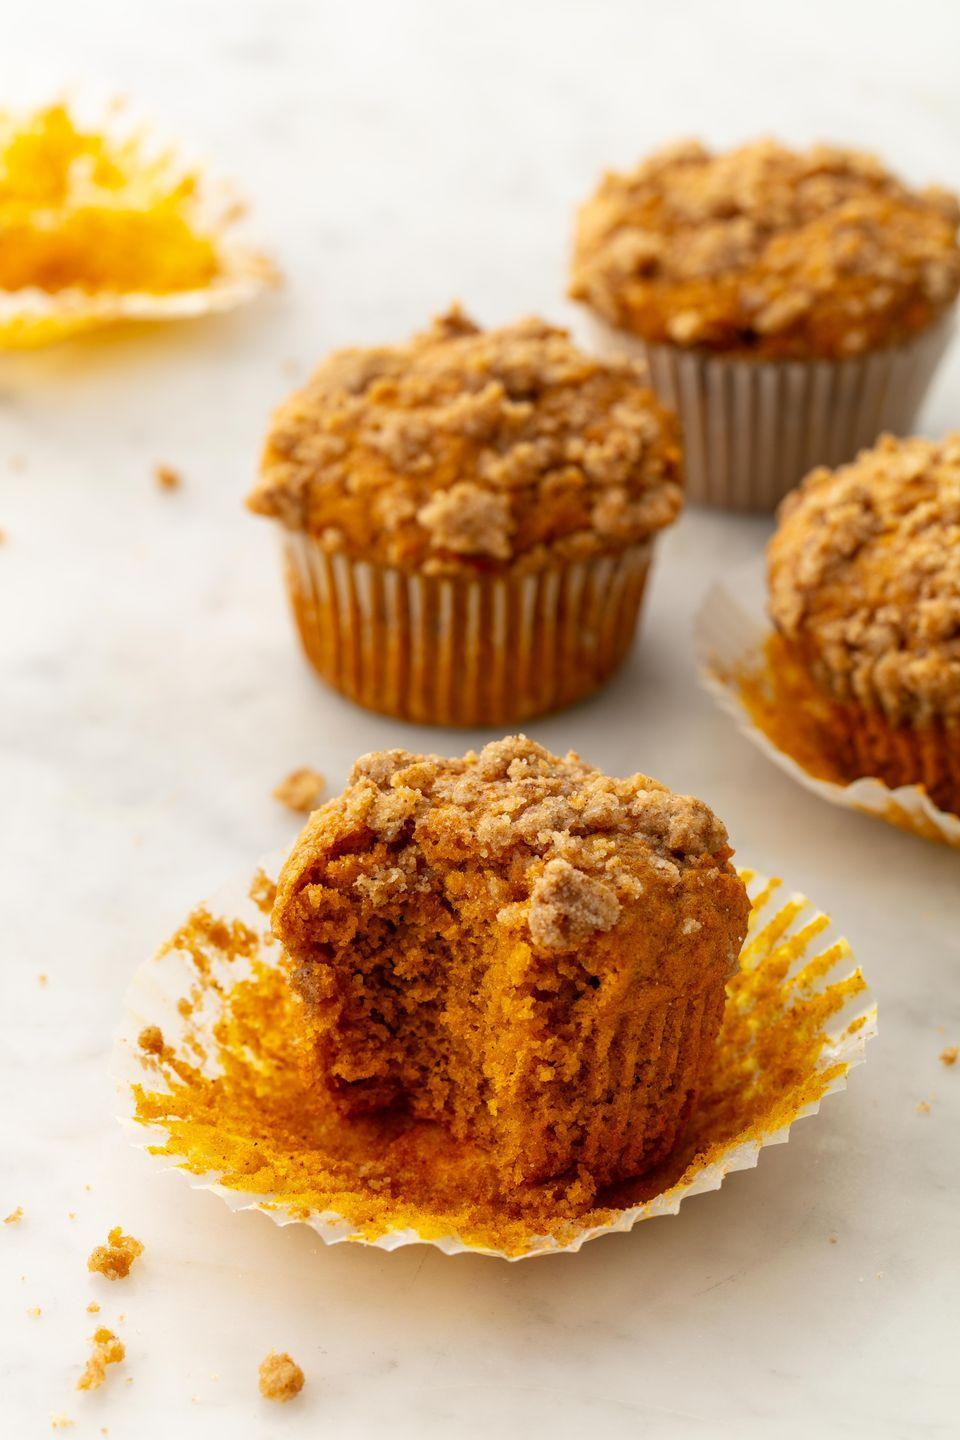 "<p>Streusel topping is peak fall. </p><p>Get the recipe from <a href=""https://www.delish.com/cooking/recipe-ideas/a21960637/pumpkin-spice-muffins/"" rel=""nofollow noopener"" target=""_blank"" data-ylk=""slk:Delish."" class=""link rapid-noclick-resp"">Delish.</a></p>"